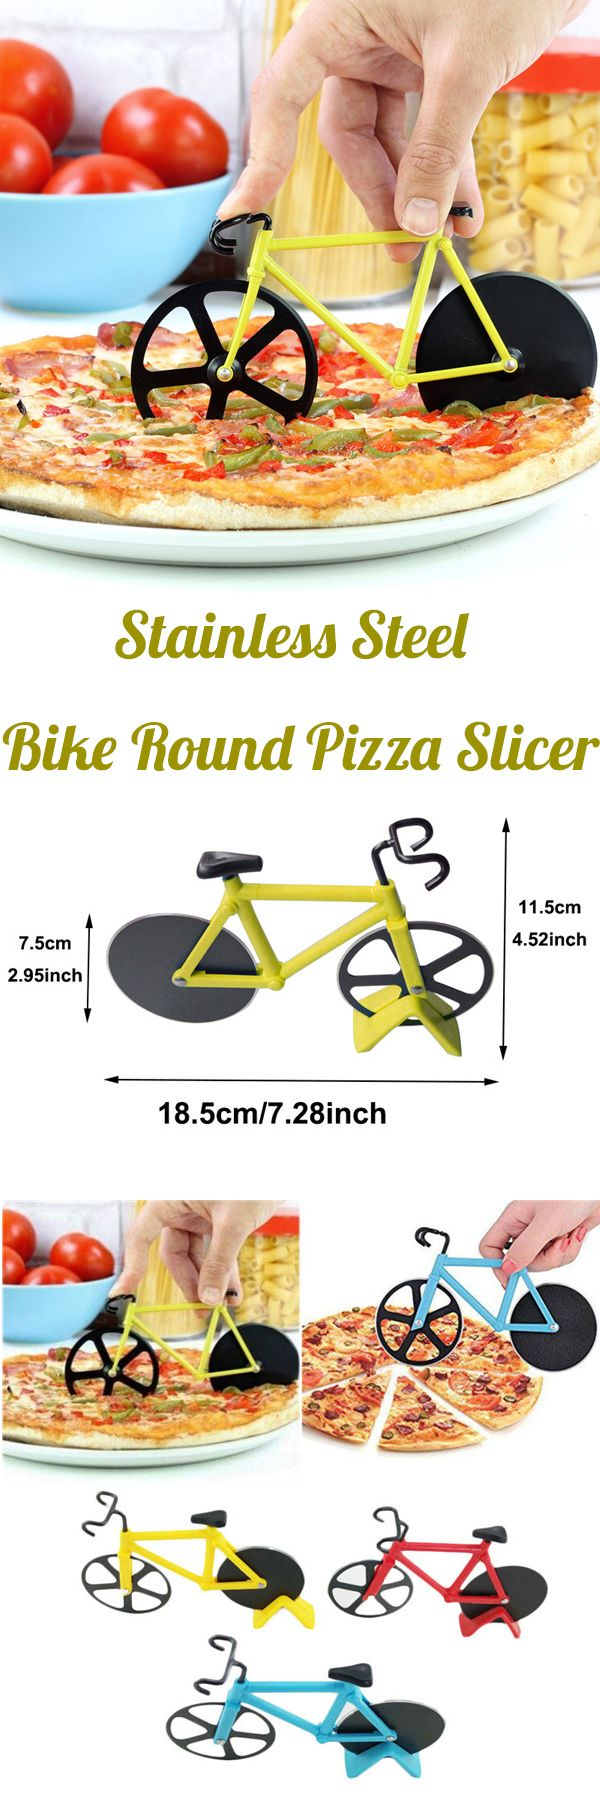 US6.99 Honana CF-BW03 Bicycle Pizza Cutter Professional Stainless Steel Non-stick Bike Round Pizza Slicer #newchic#gathering#gift#family#kitchen